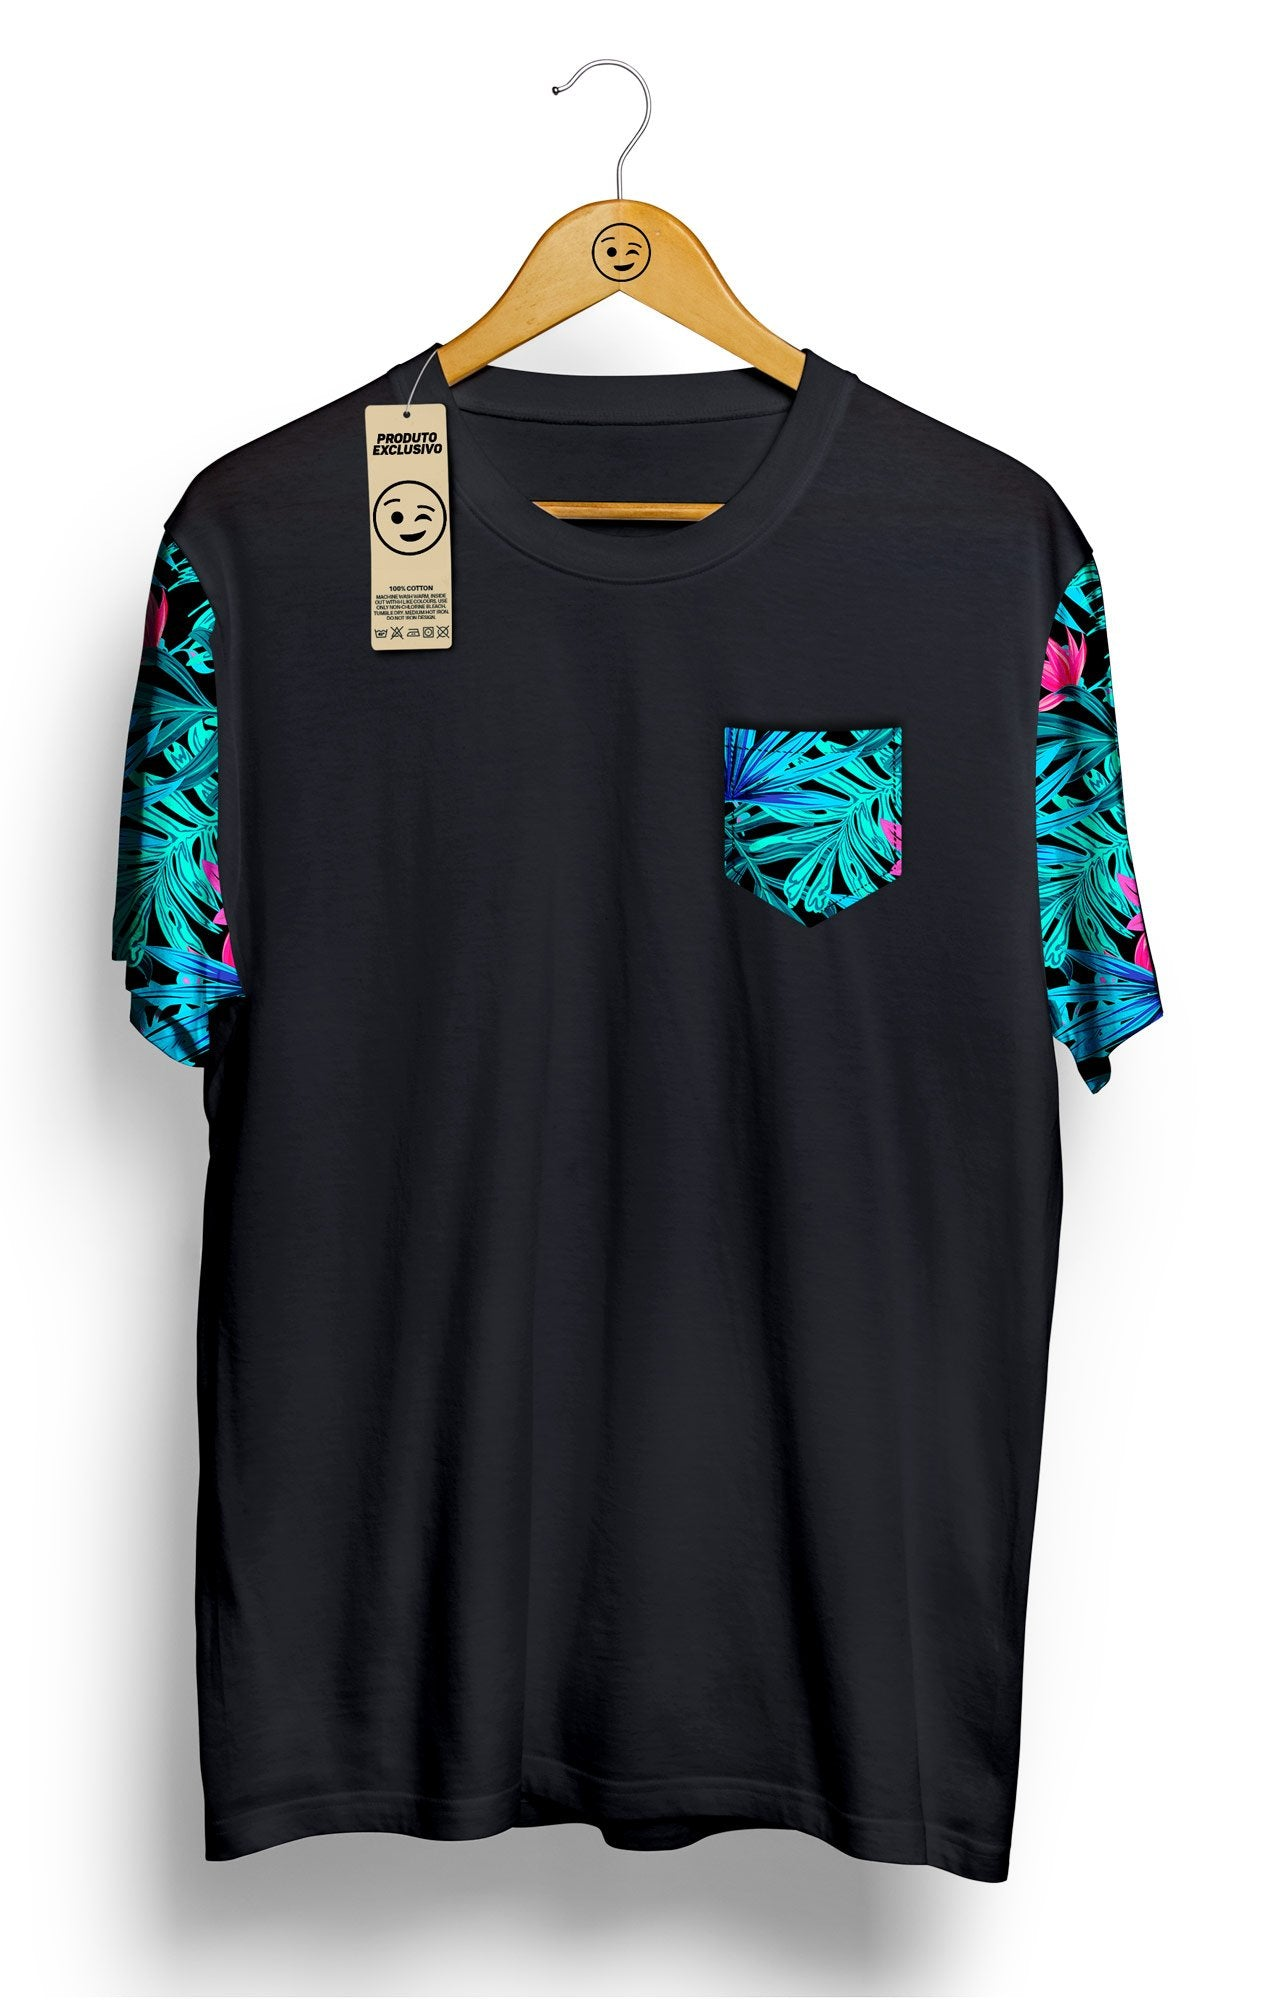 Camiseta Tropical com Bolso - Locamisetas